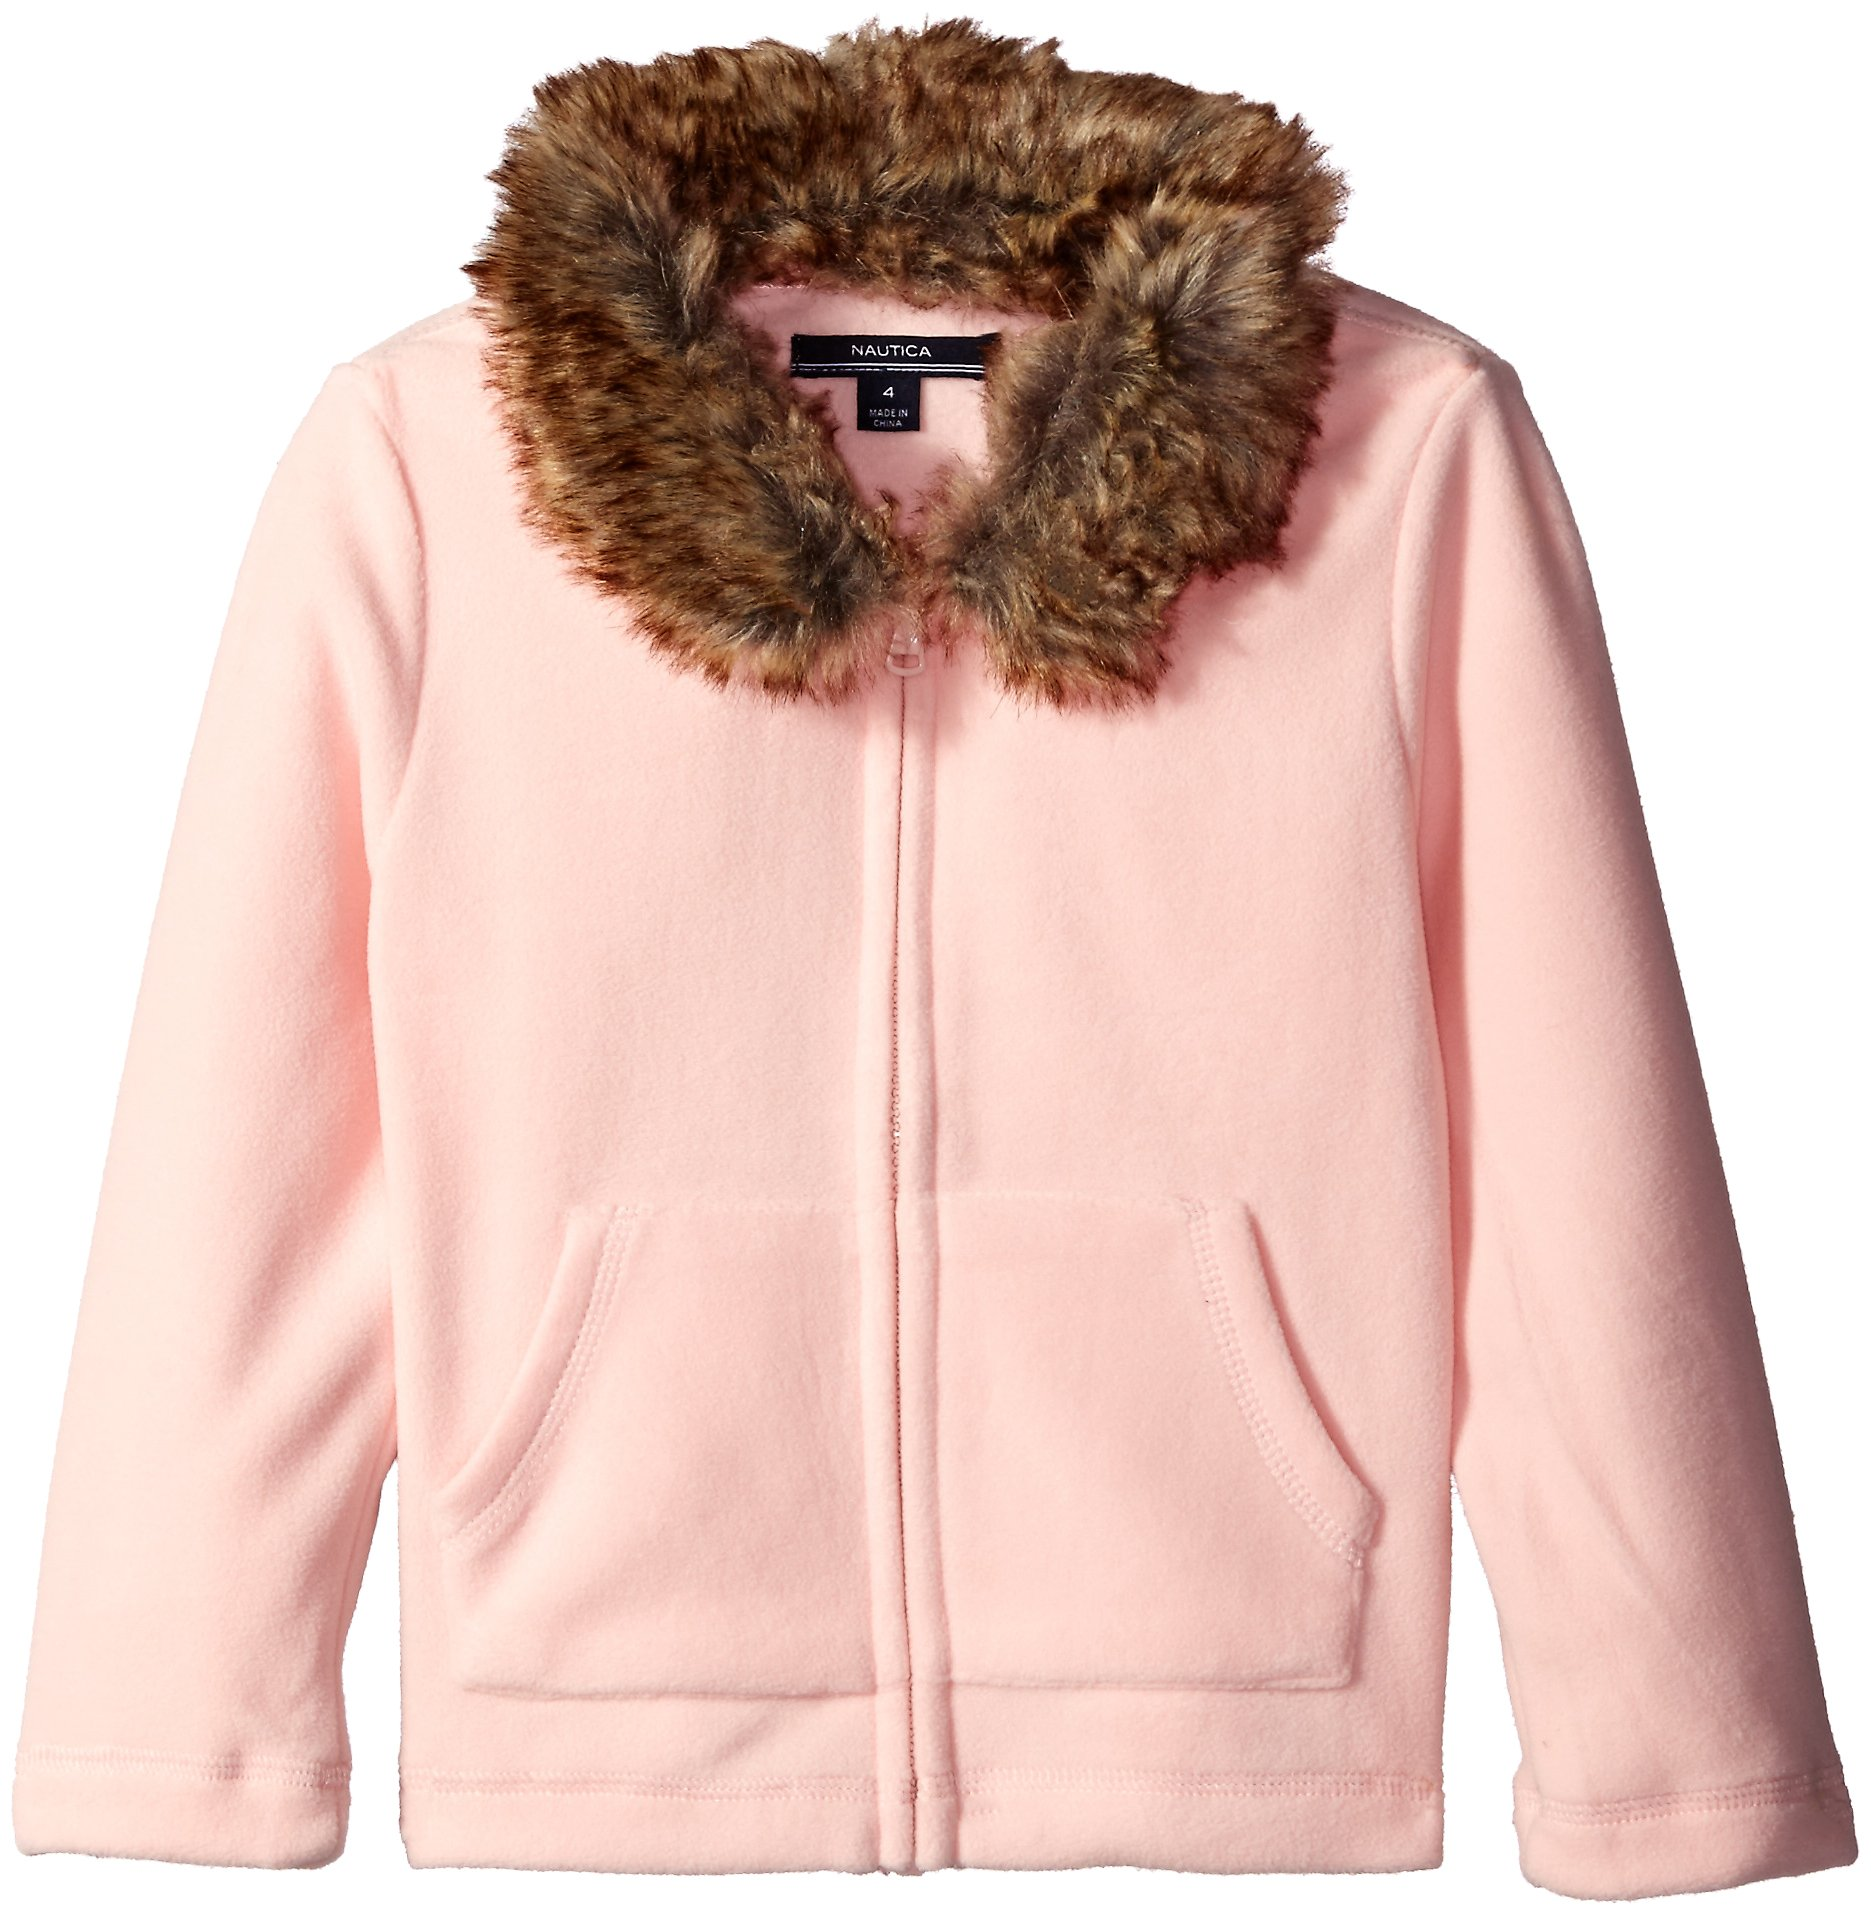 Nautica Big Girls Fleece Jacket with Removable Faux Fur Collar, Pale Pink, 7